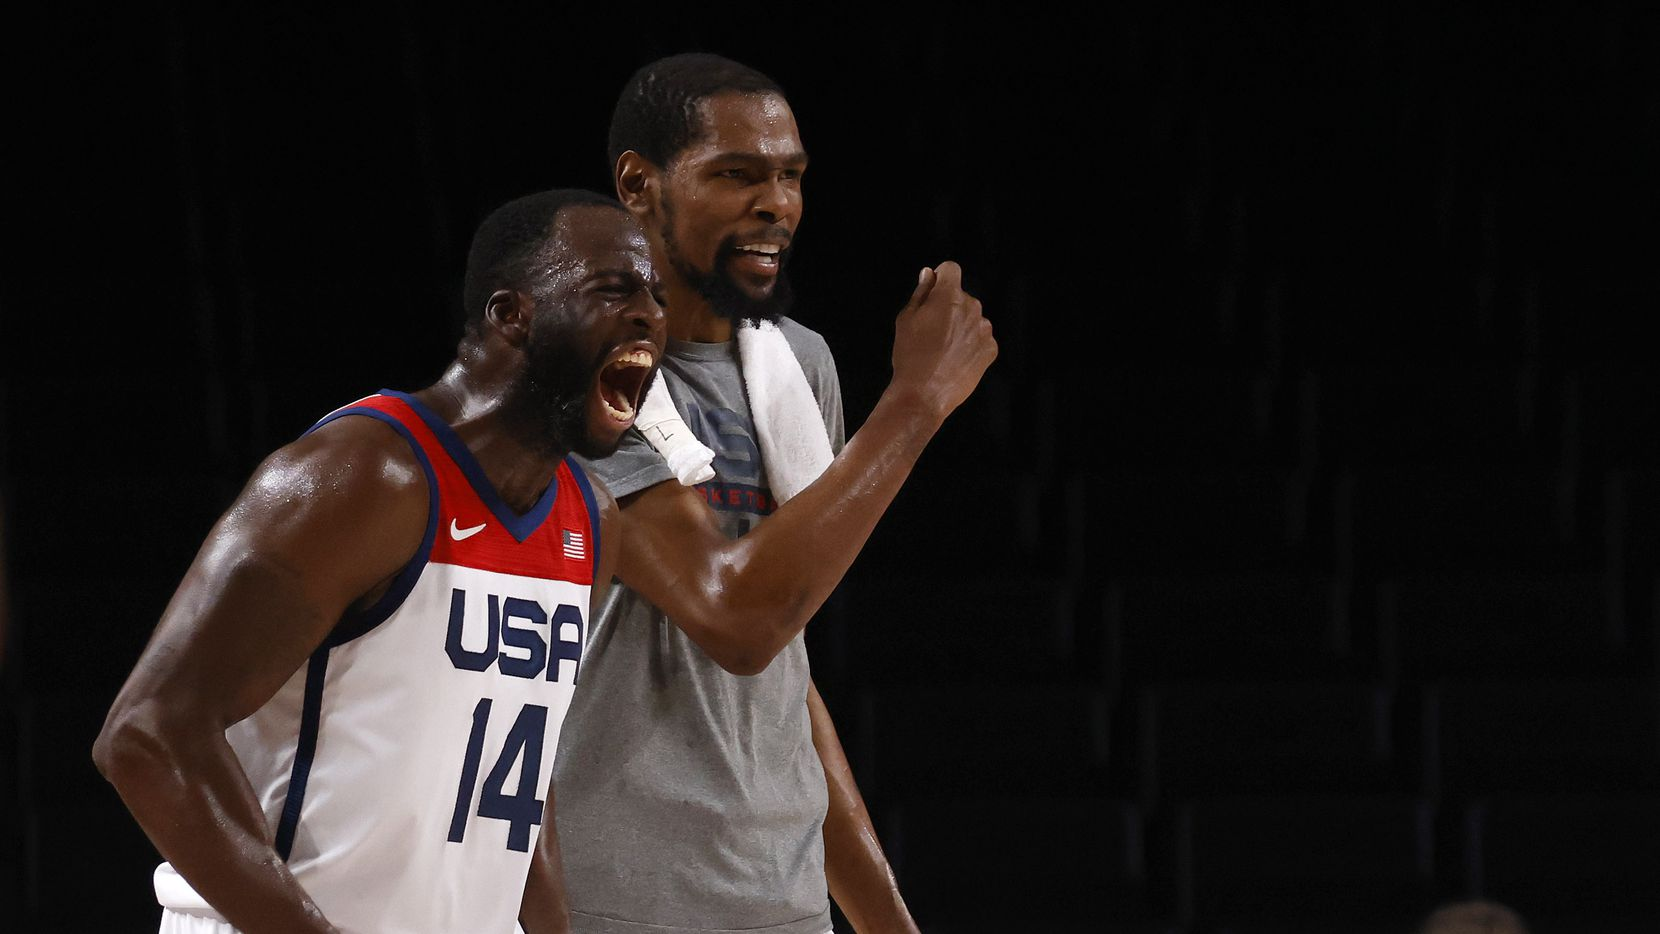 USA's Draymond Green (14) and Kevin Durant (7) celebrate a made basket in a game against Australia during the second half of a men's basketball semifinal at the postponed 2020 Tokyo Olympics at Saitama Super Arena, on Thursday, August 5, 2021, in Saitama, Japan. USA defeated Australia 97-78 to advance to the gold medal game.